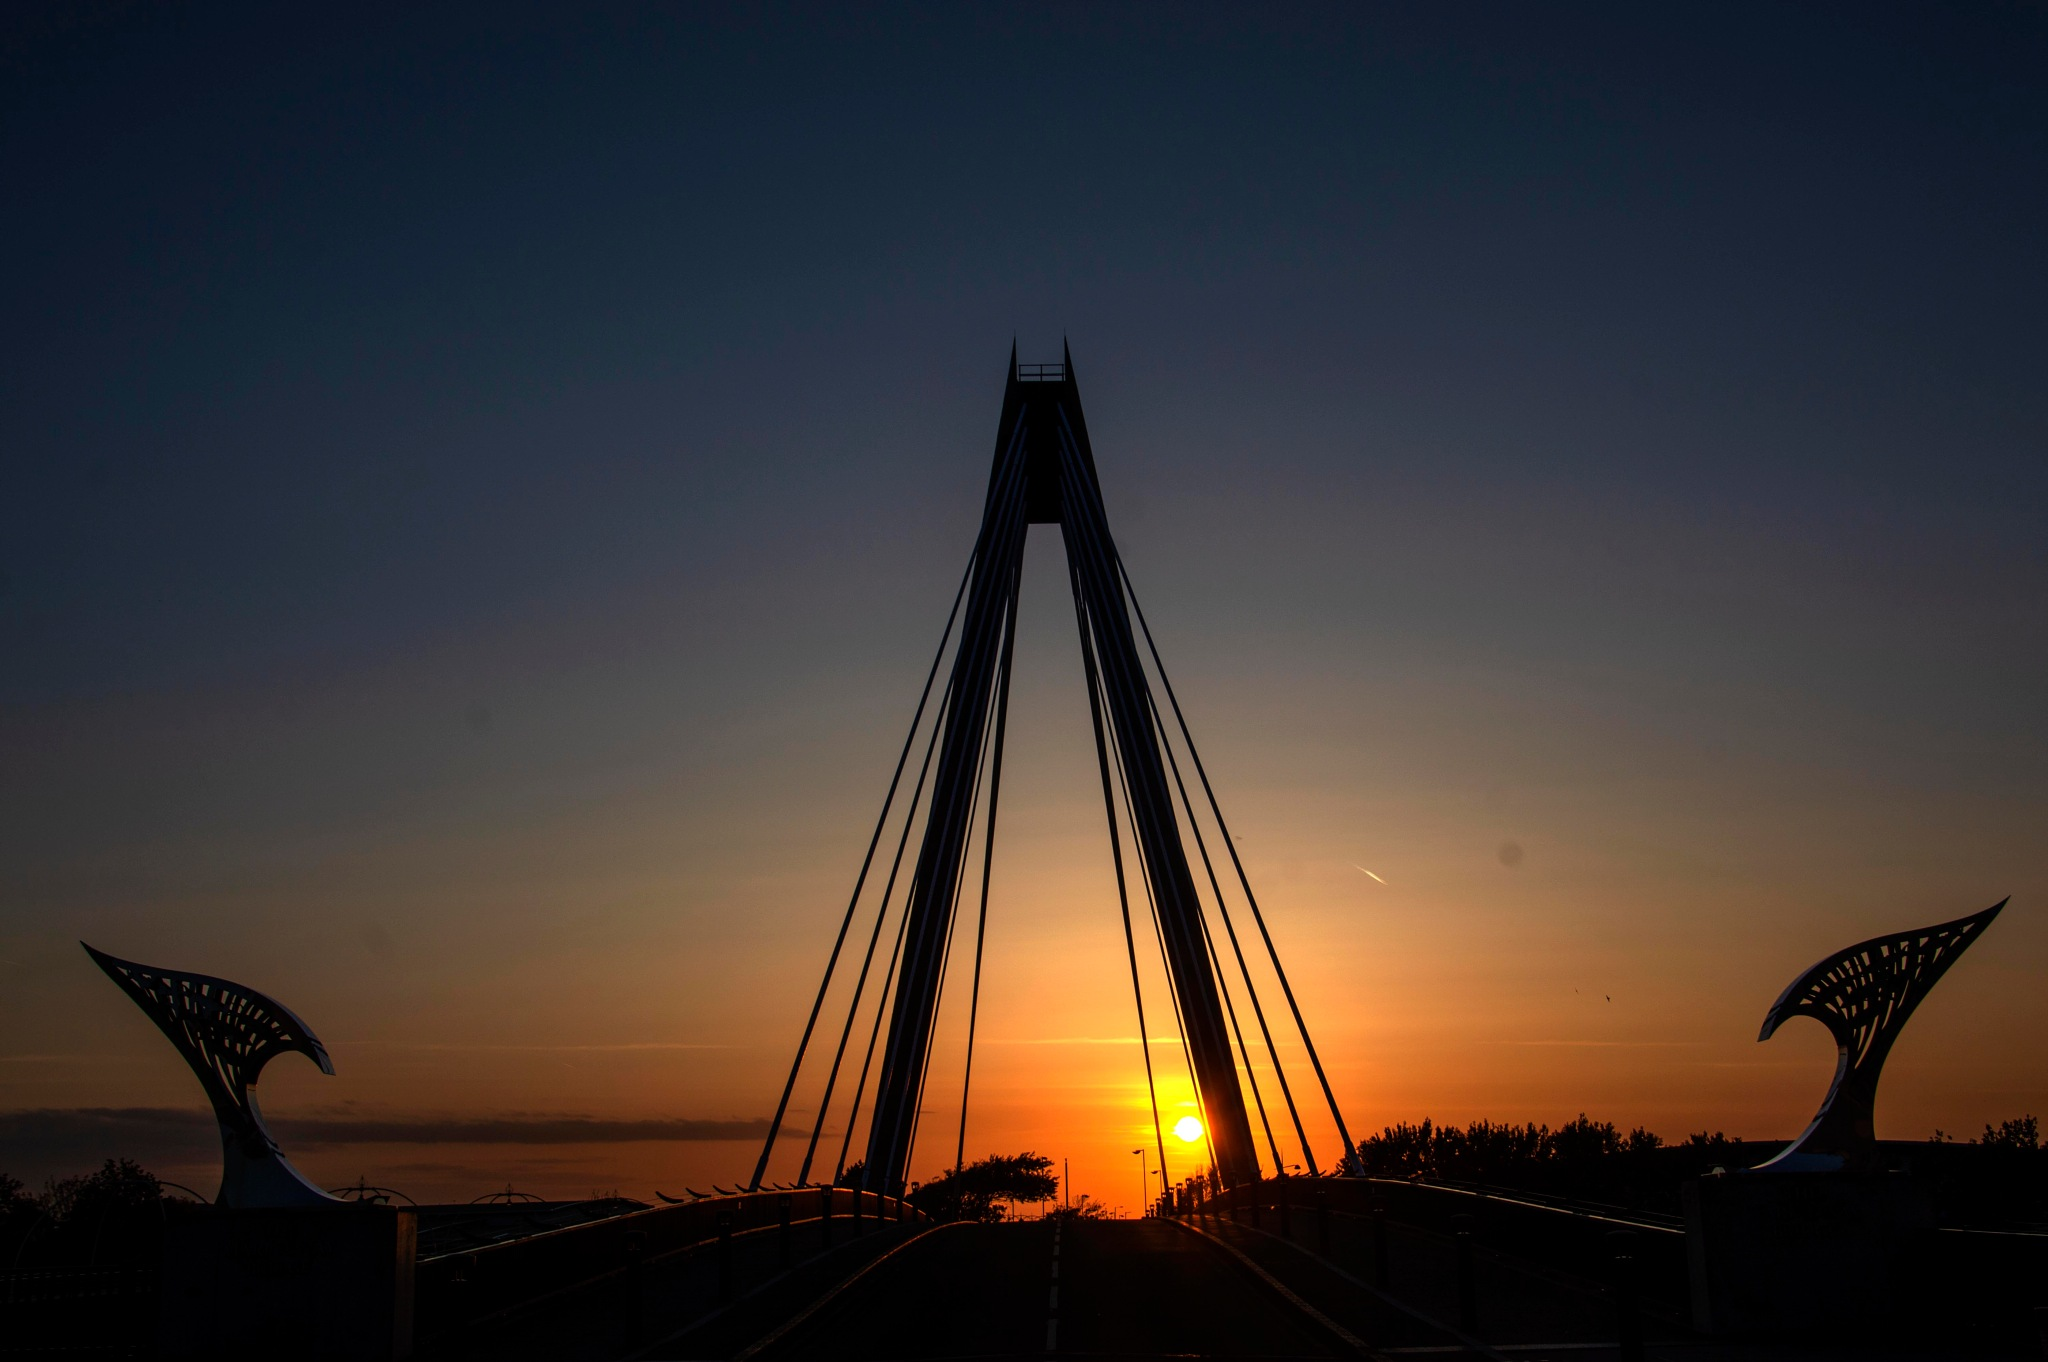 Sunset on the Bridge by Wizard